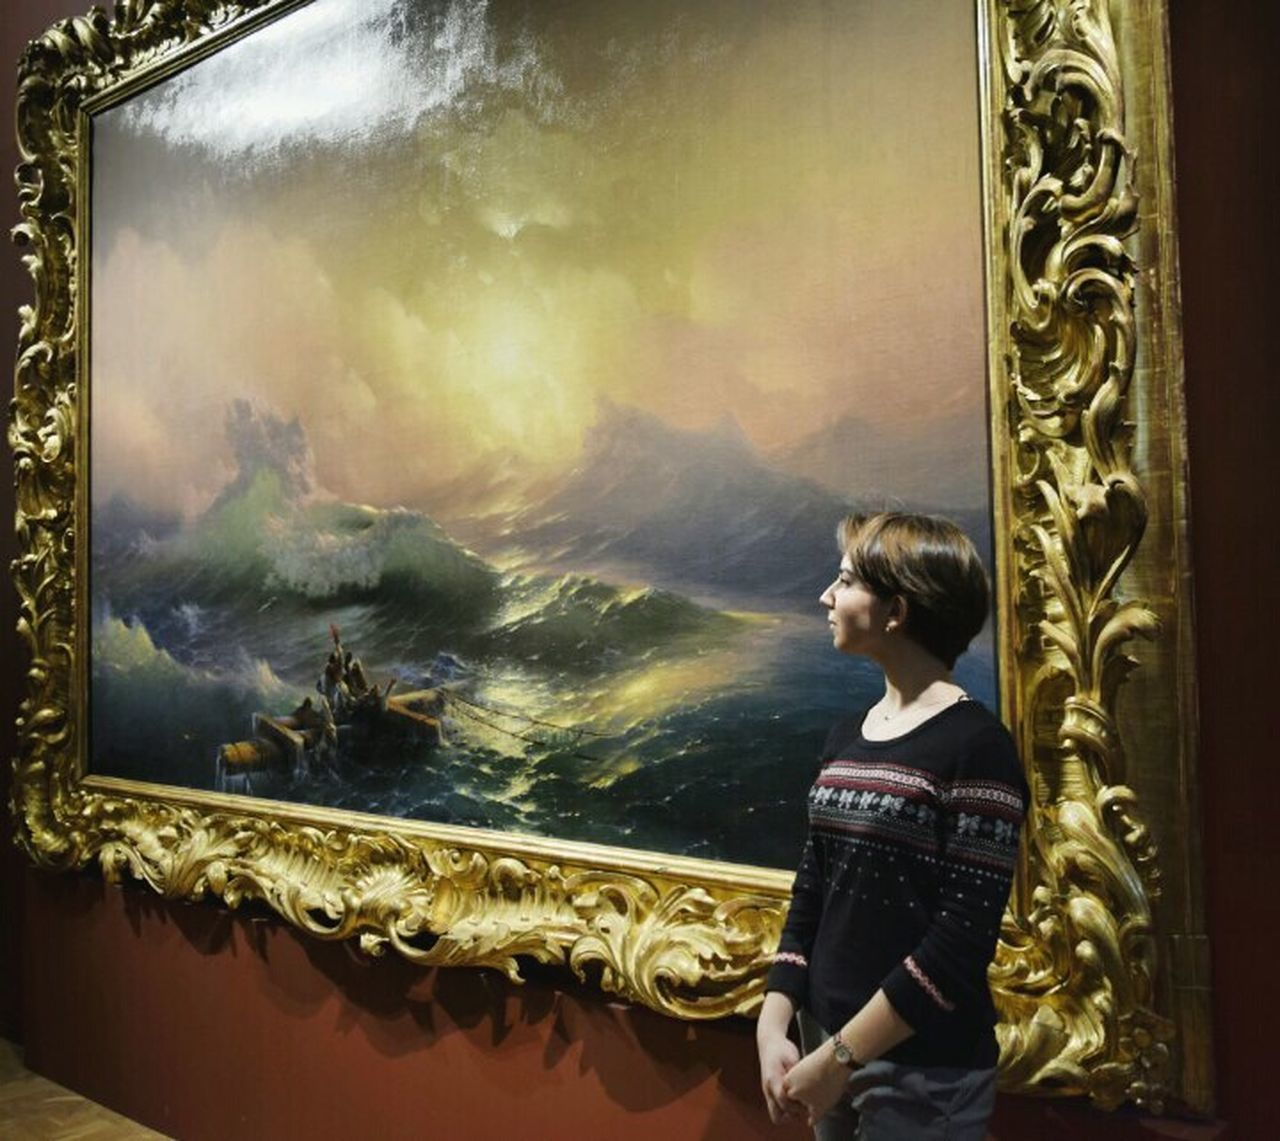 One Person One Man Only Adults Only Young Adult Beauty Spa Day Indoors  Adult People Nature Weather Beautiful Picture Sea Beauty In Nature Arts Culture And Entertainment Storm Classic Айвазовский Aivazovsky шторм Ship Details Textured  живопись классика